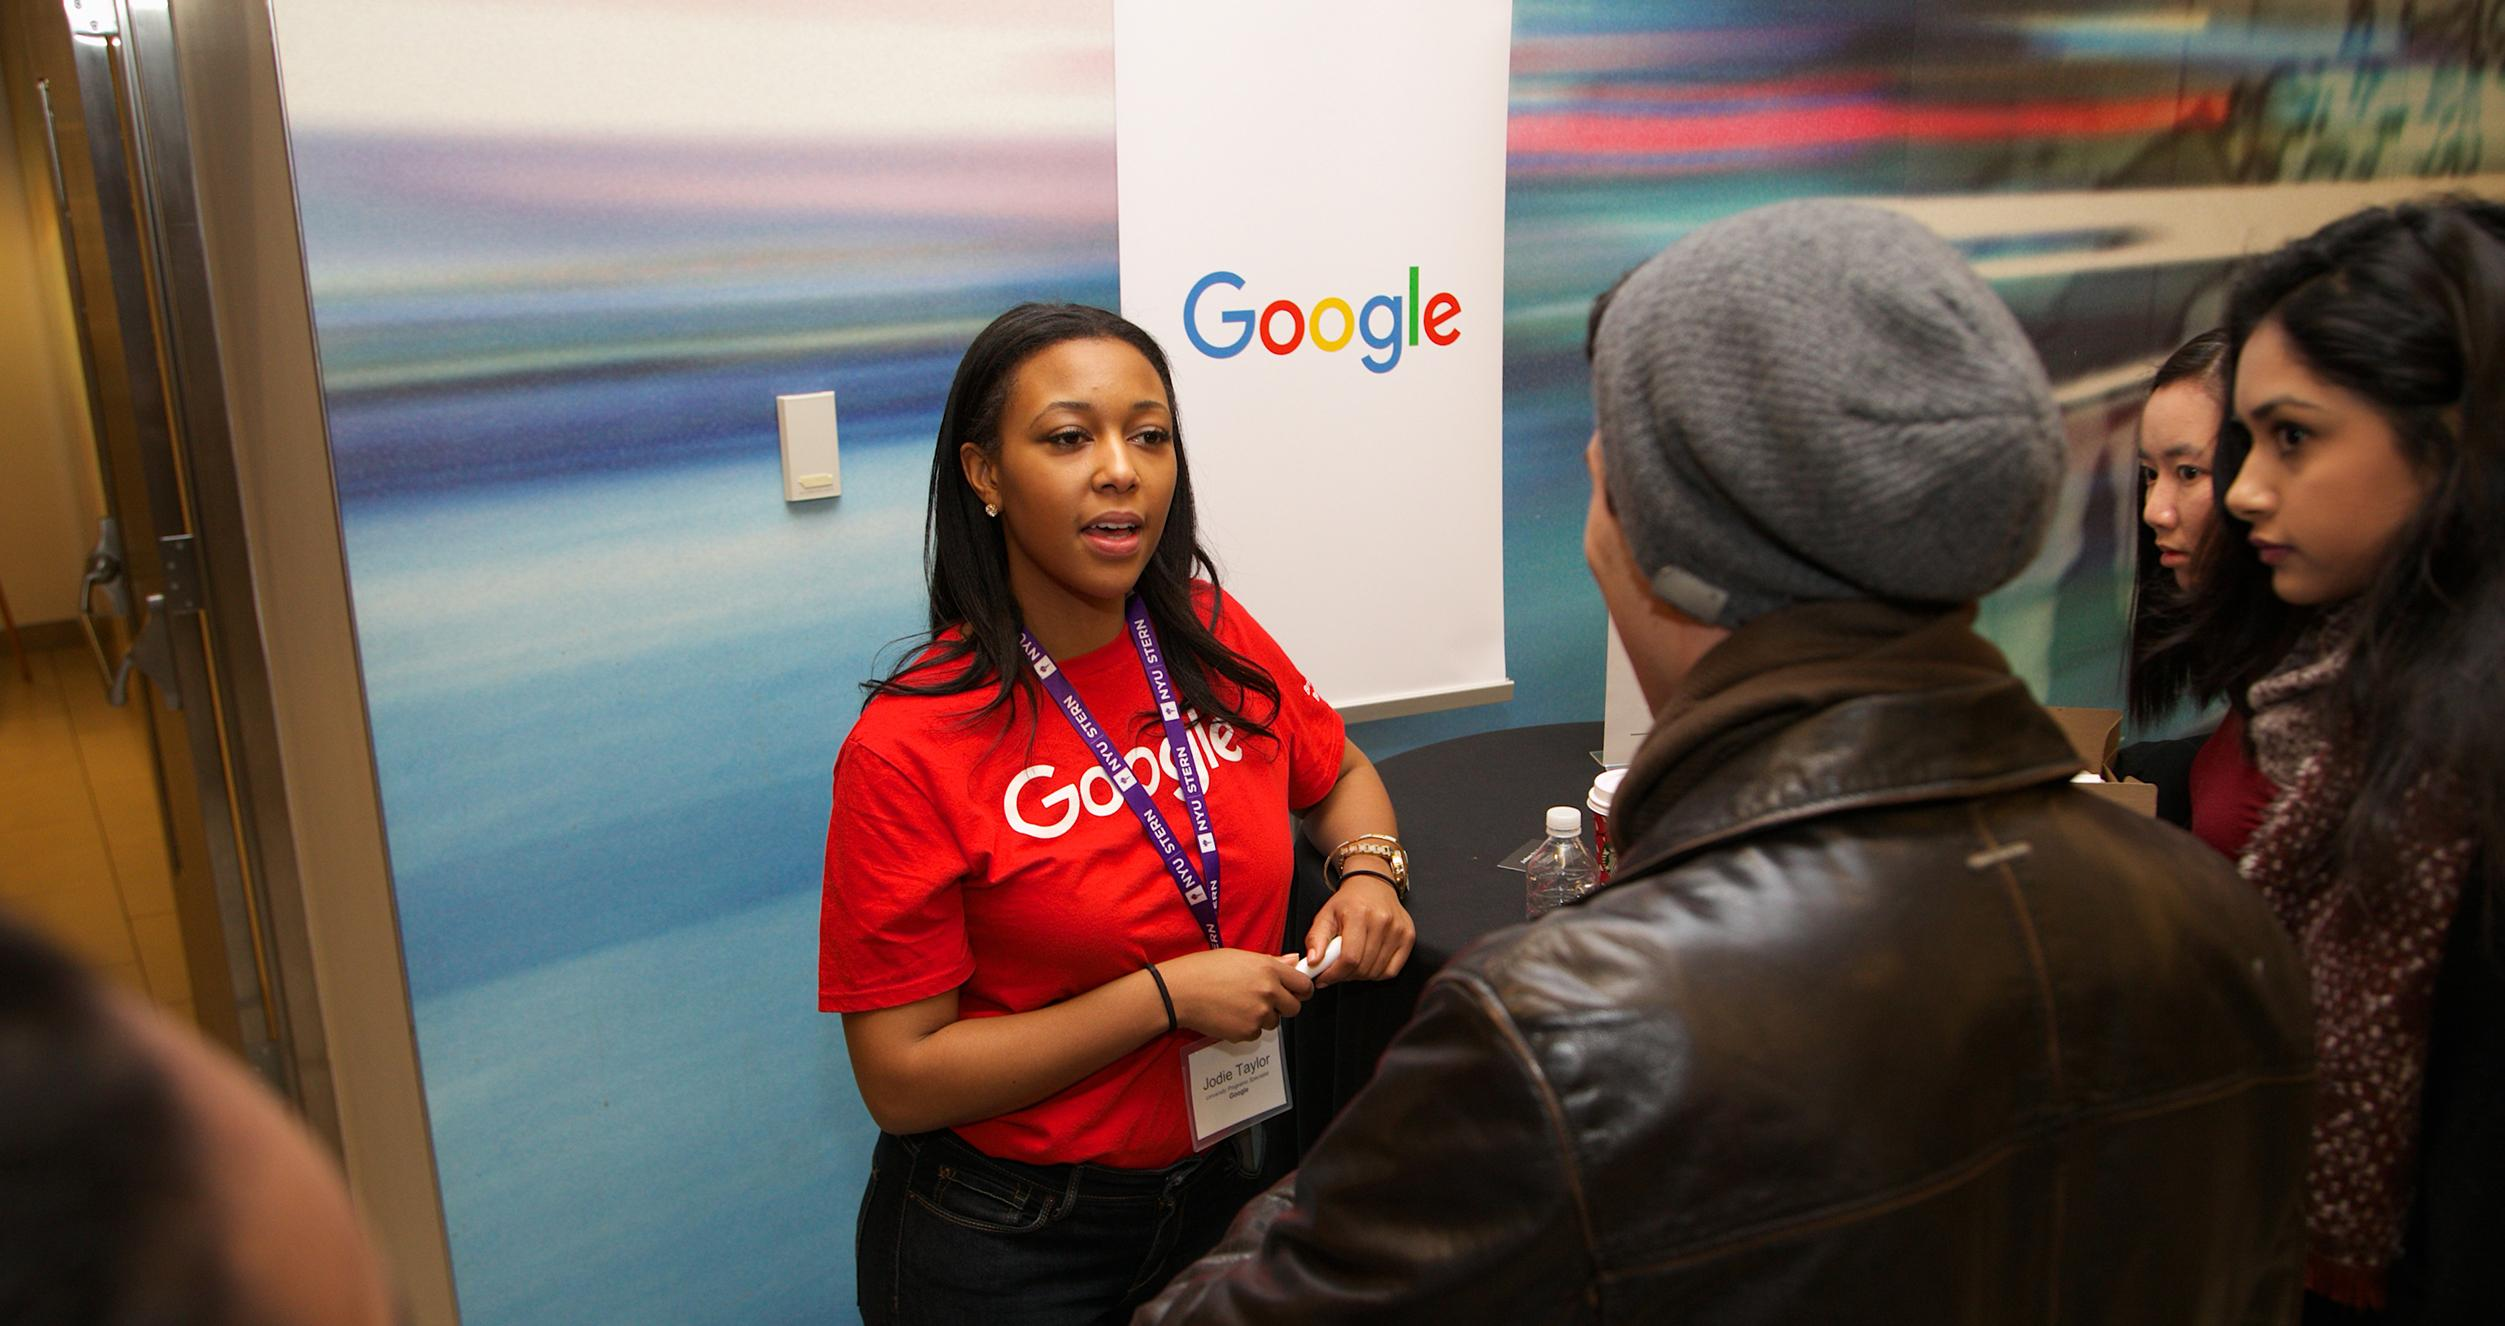 Google recruiter speaking with students at Stern Exchange event